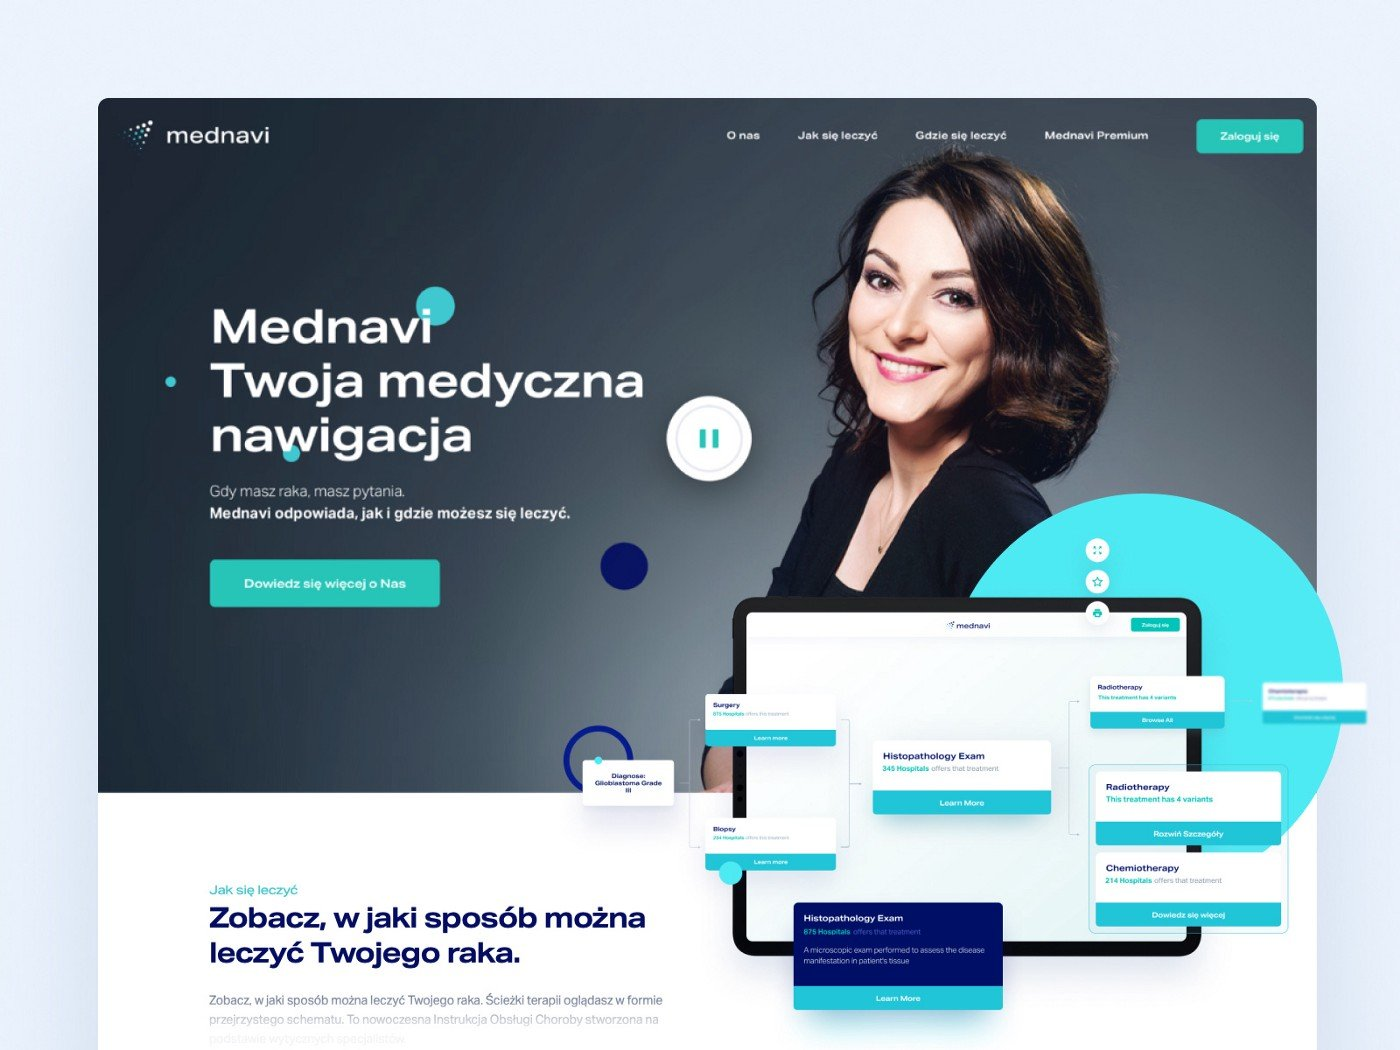 Screens from the mednavi landing page